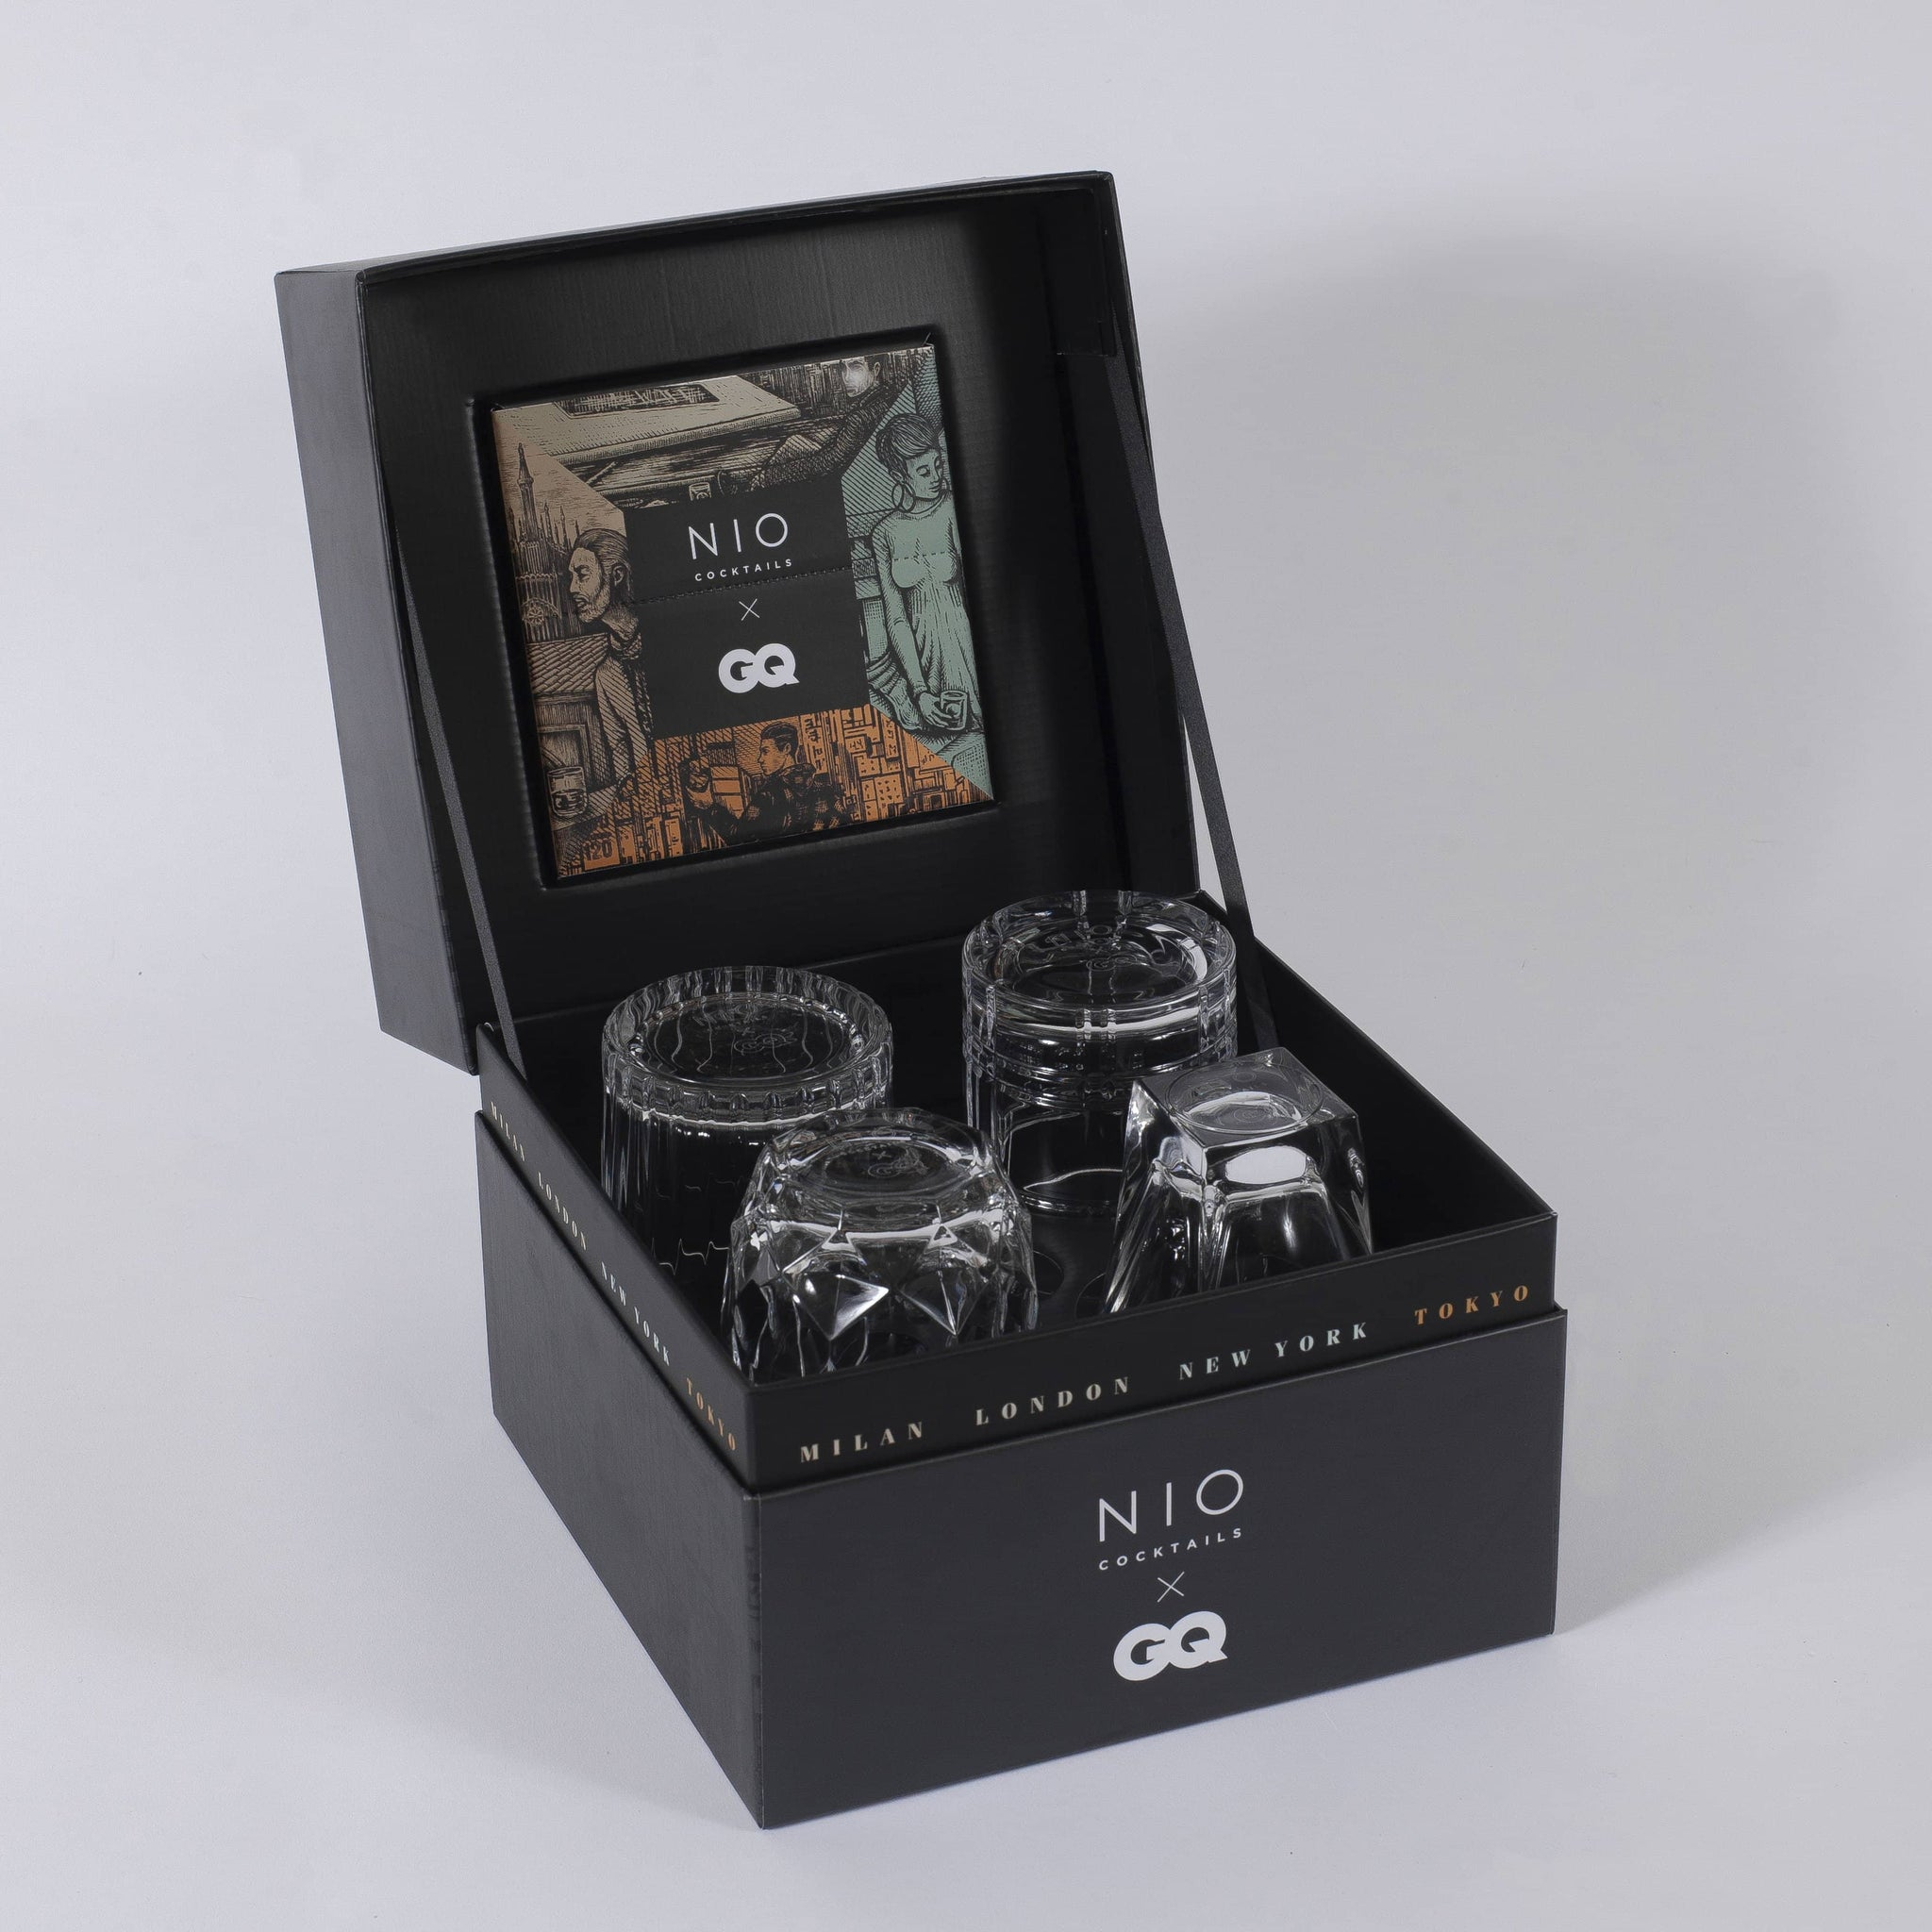 nio_cocktails_gq_box